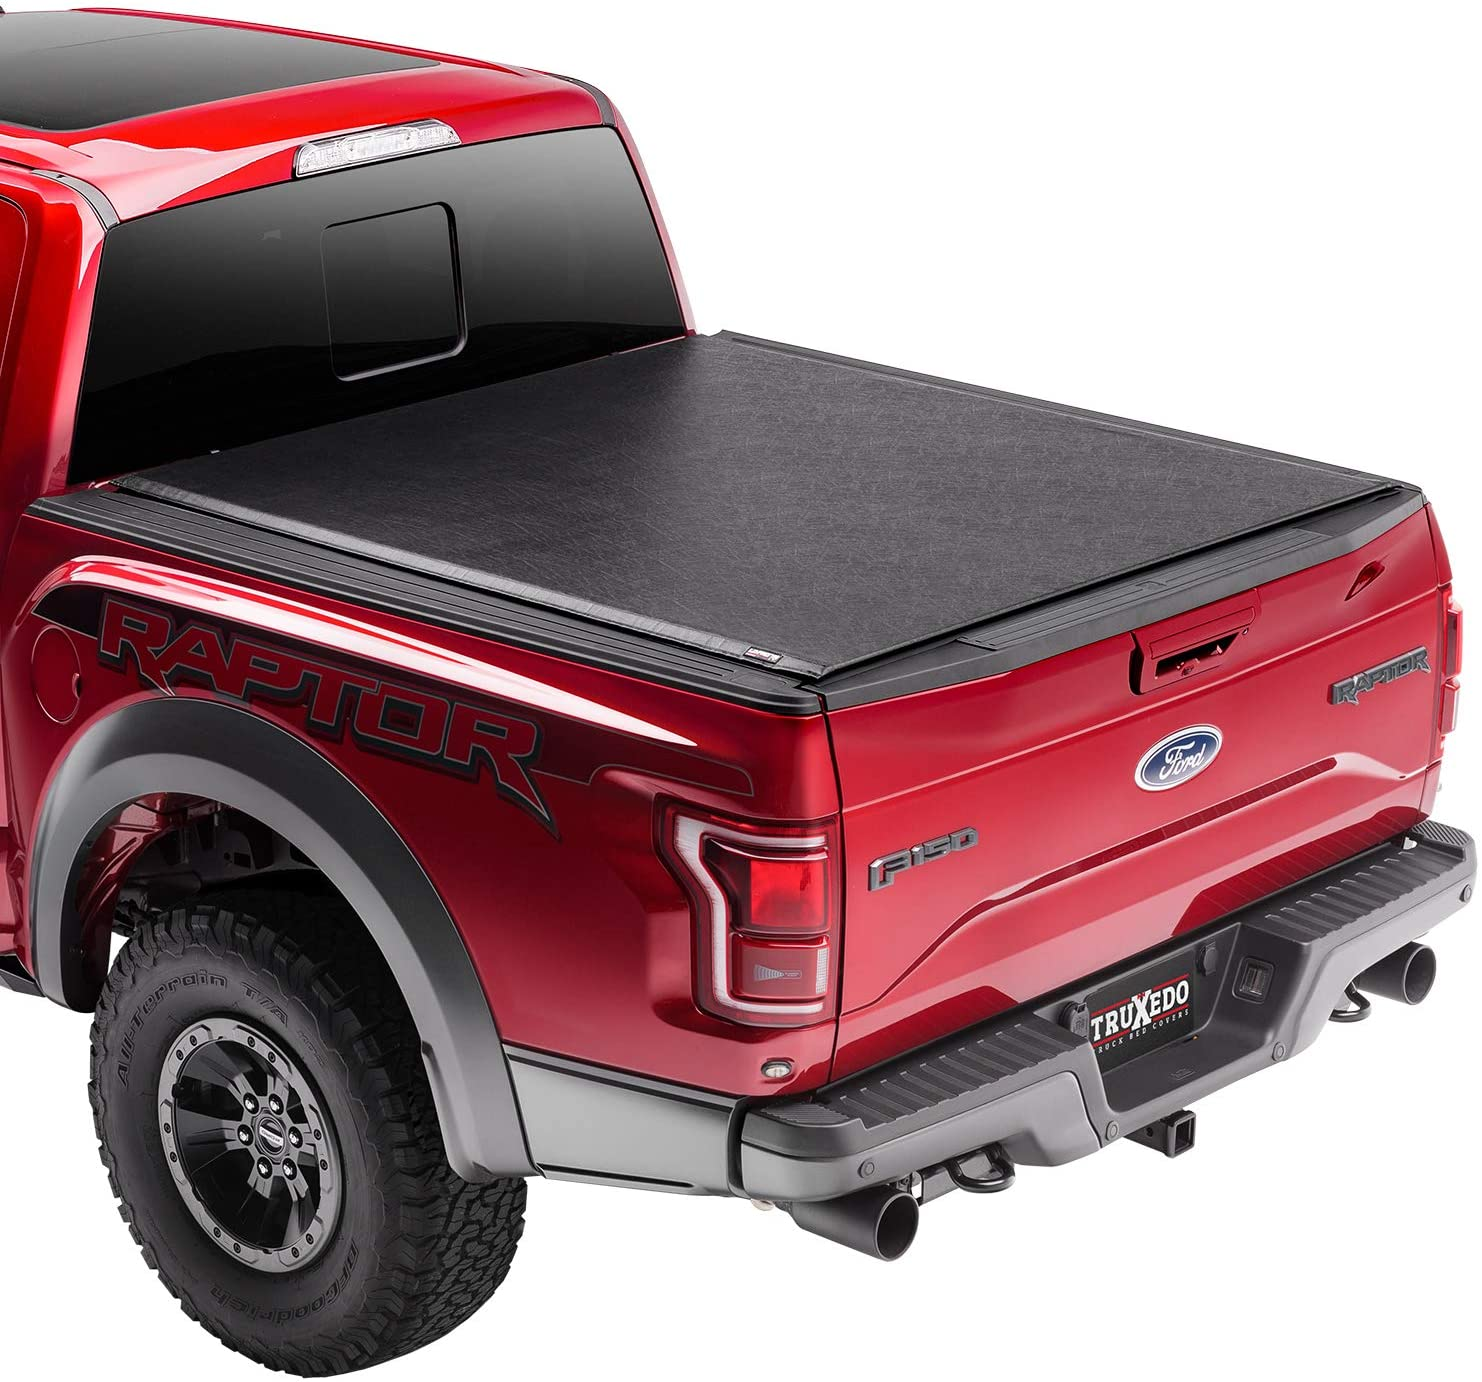 TruXedo Lo Pro Soft Roll Max 57% OFF Up Tonneau f Tucson Mall Cover Bed Truck 567901